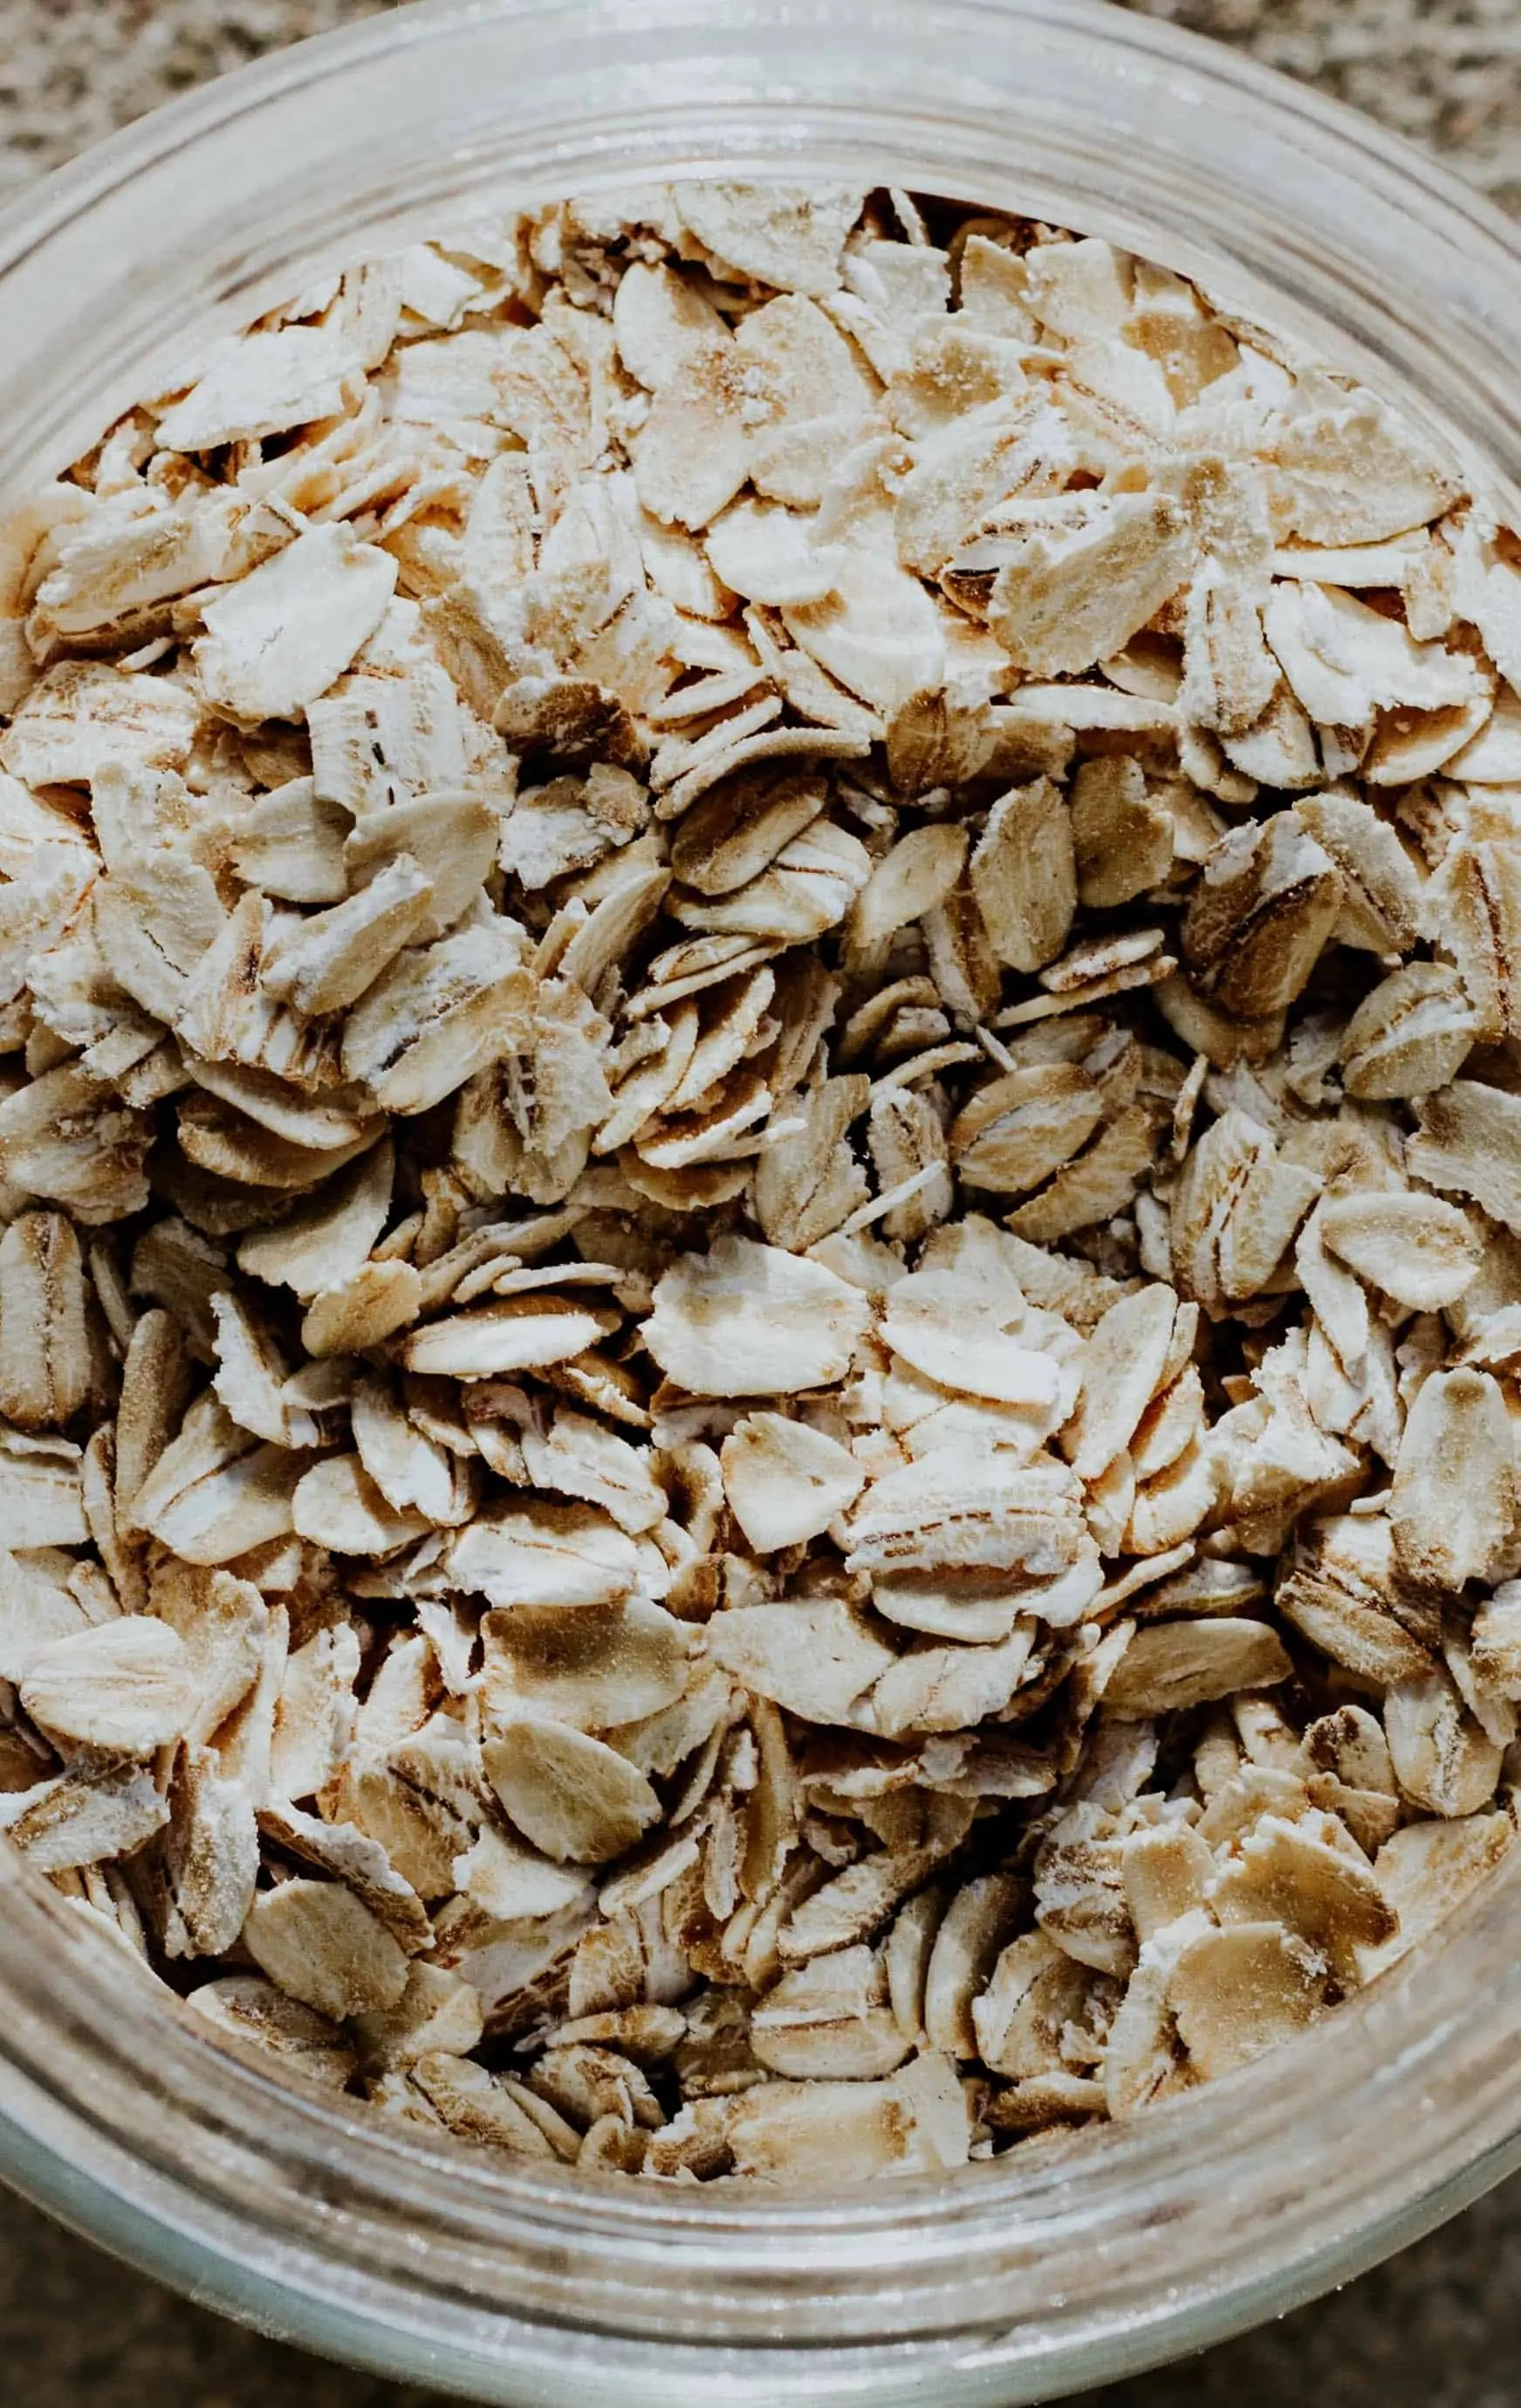 Eat Fiber to Lose Weight